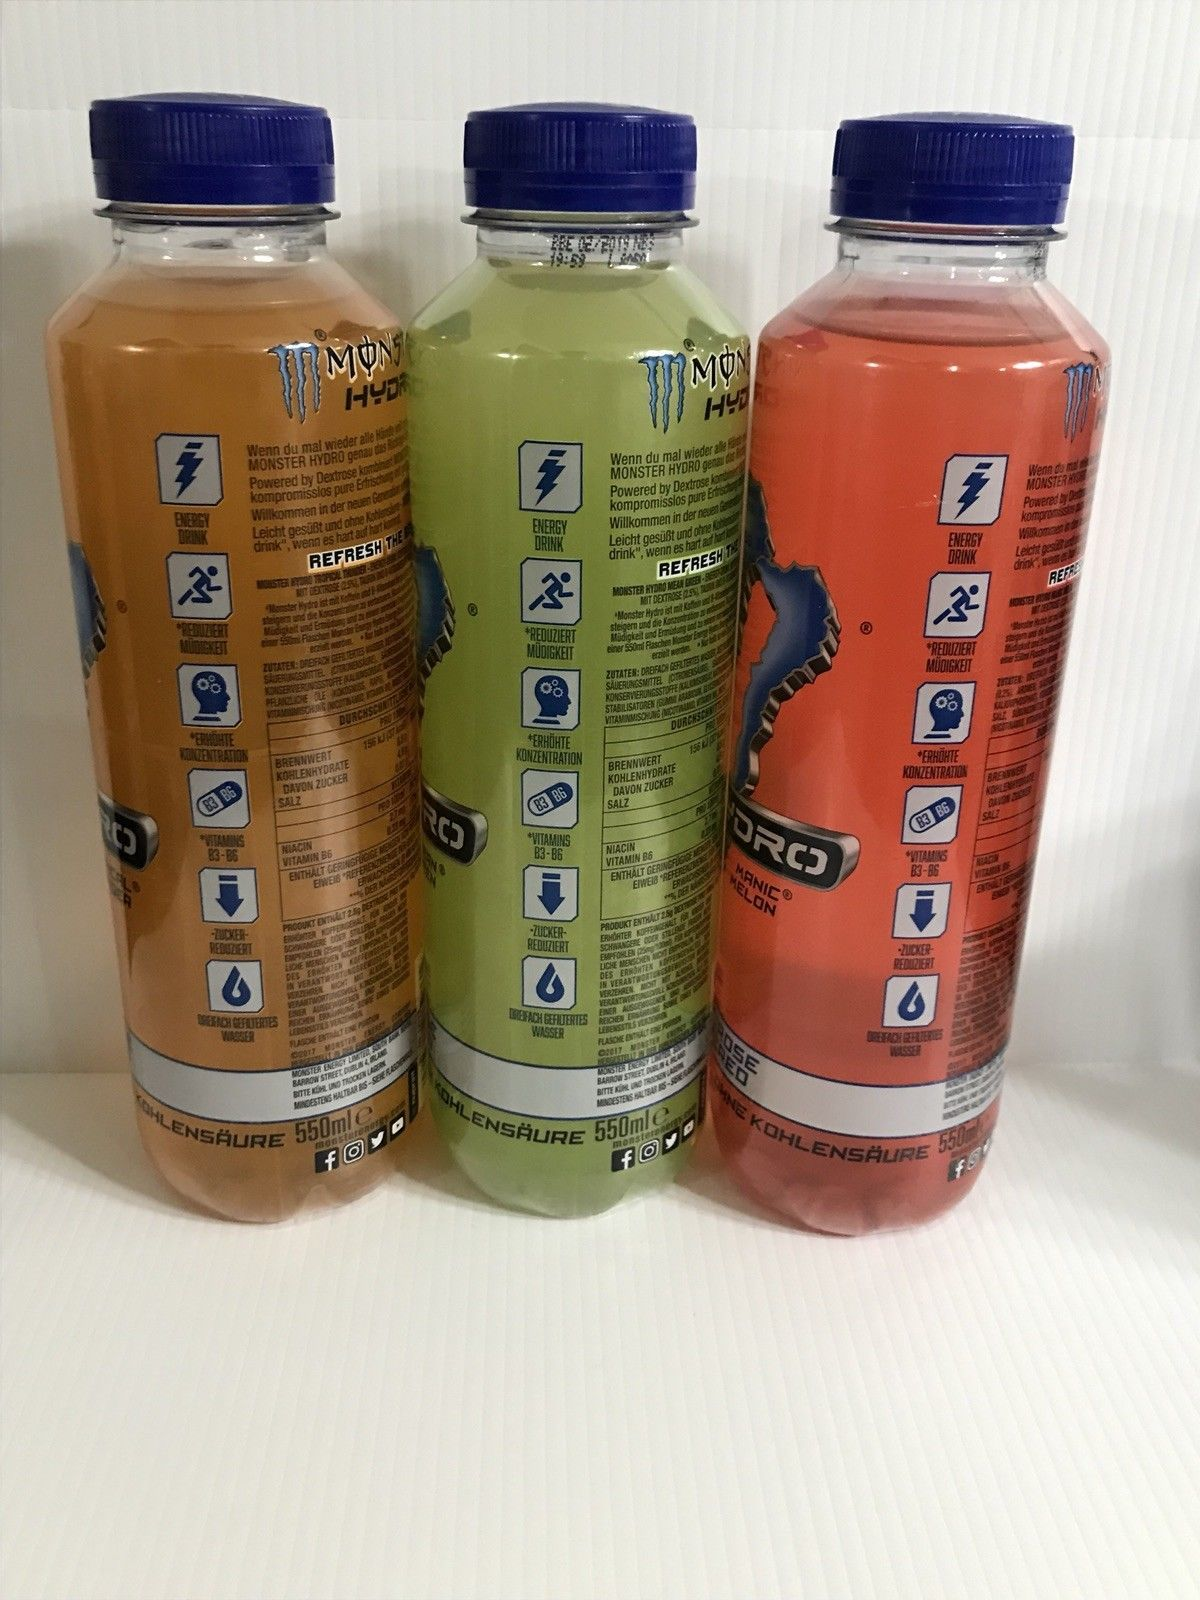 Monster Energy Drink Hydro 550ml Bottles From Germany. One Of Each Kind Pictured